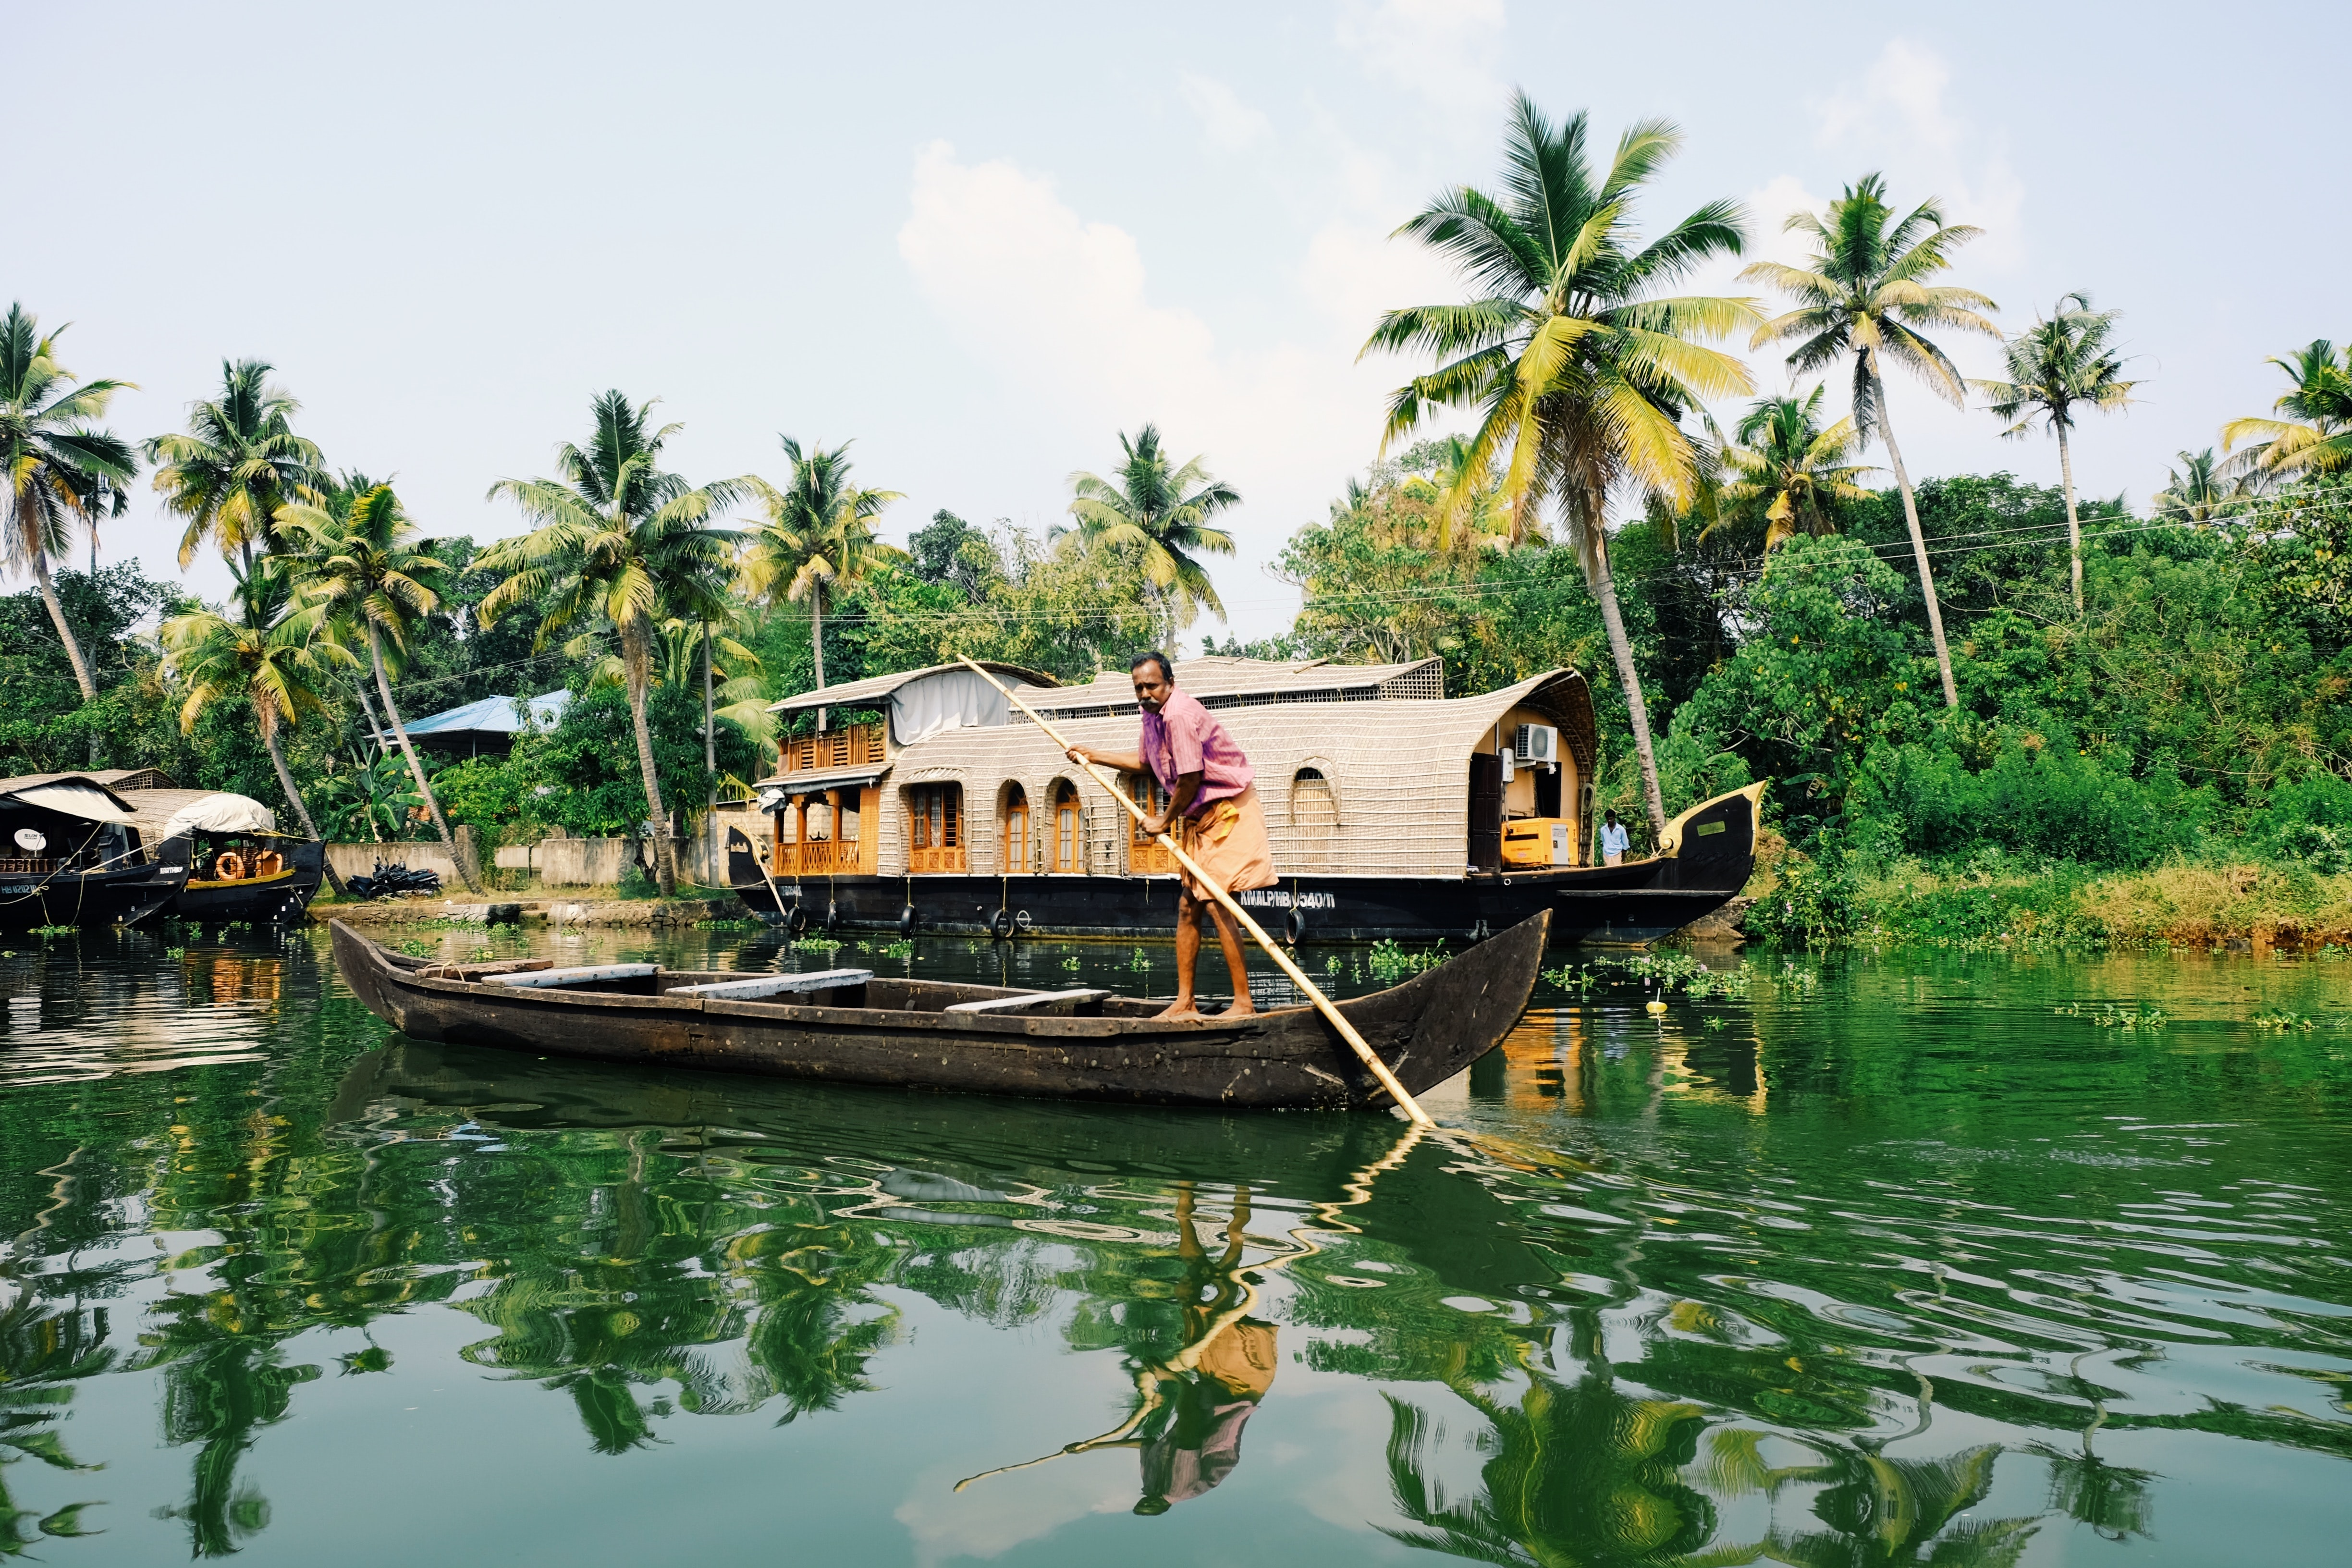 Pic shows the beauty of Kerala, India